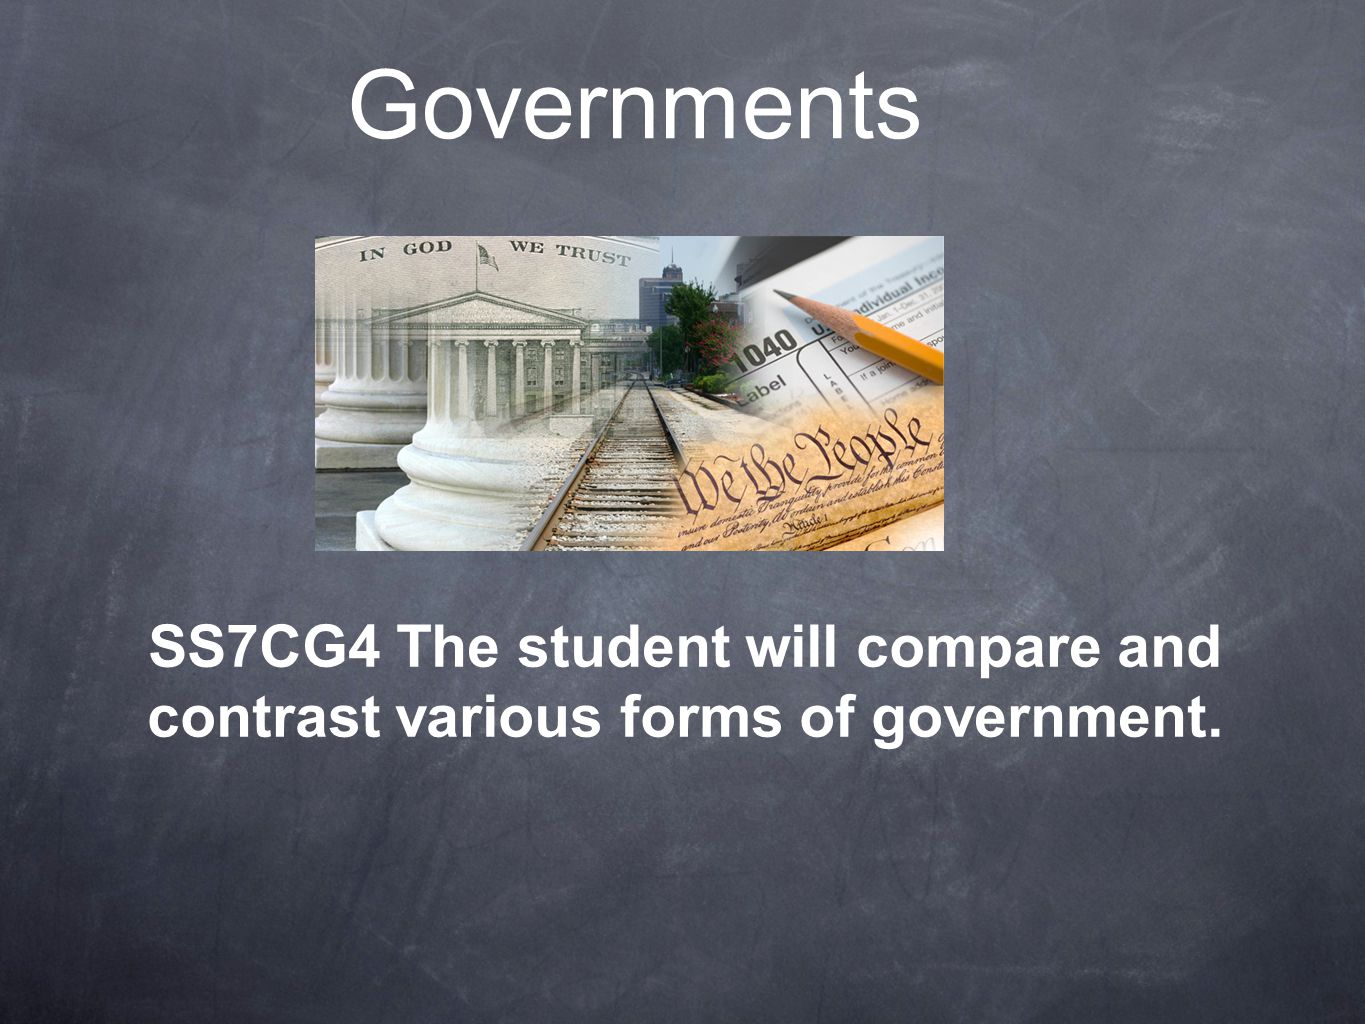 Governments SS7CG4 The student will compare and contrast various forms of government.